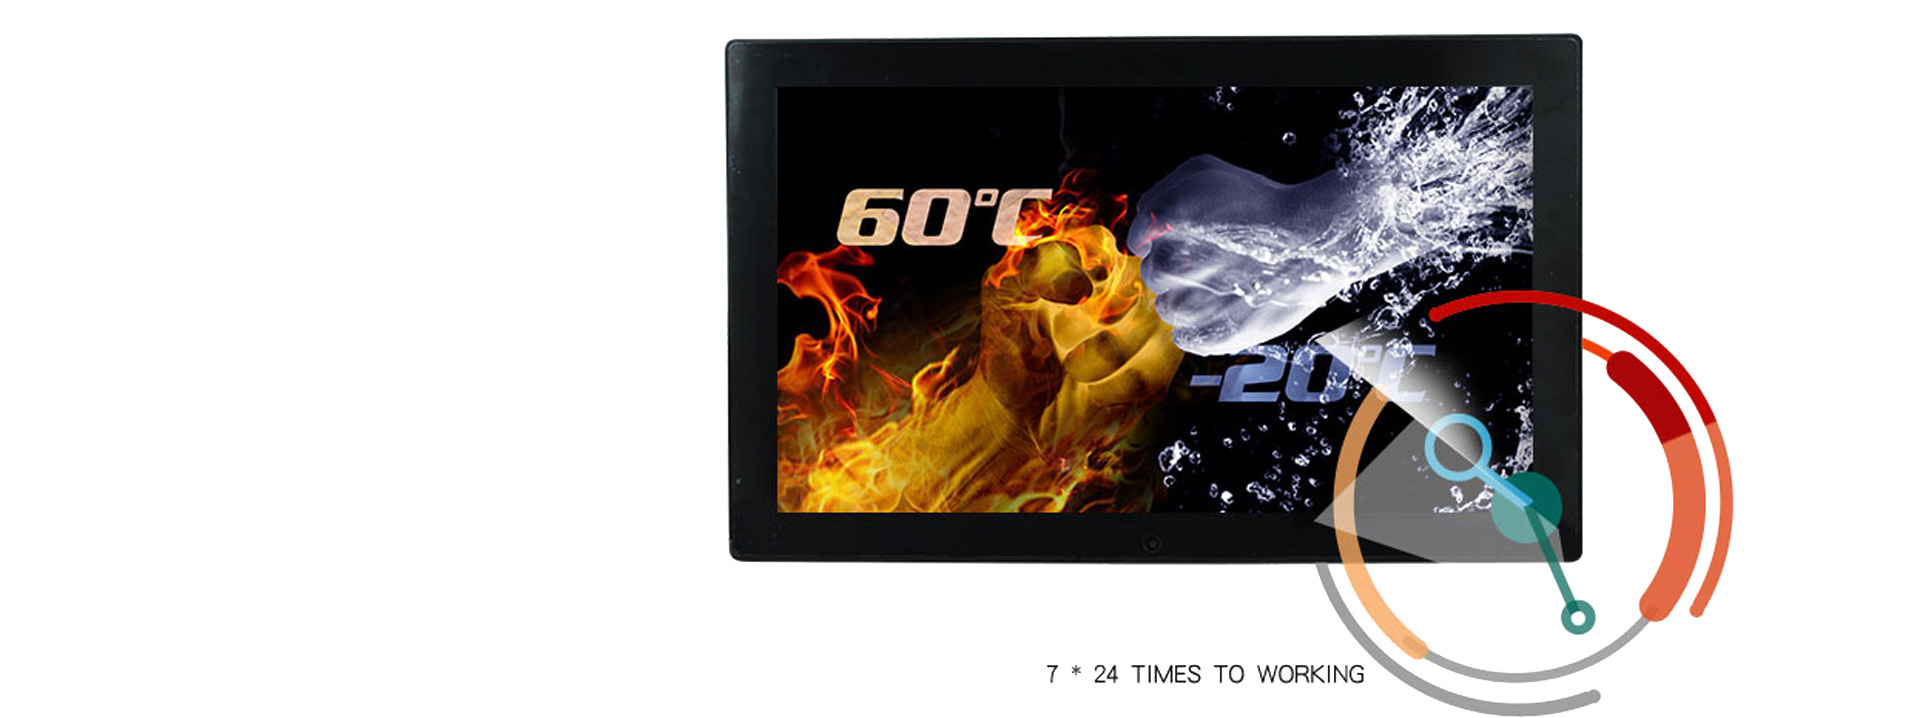 Hengstar -Hsapc Series Rockchip Tft Lcd Screen Industrial Tablet PC | Hengstar-31